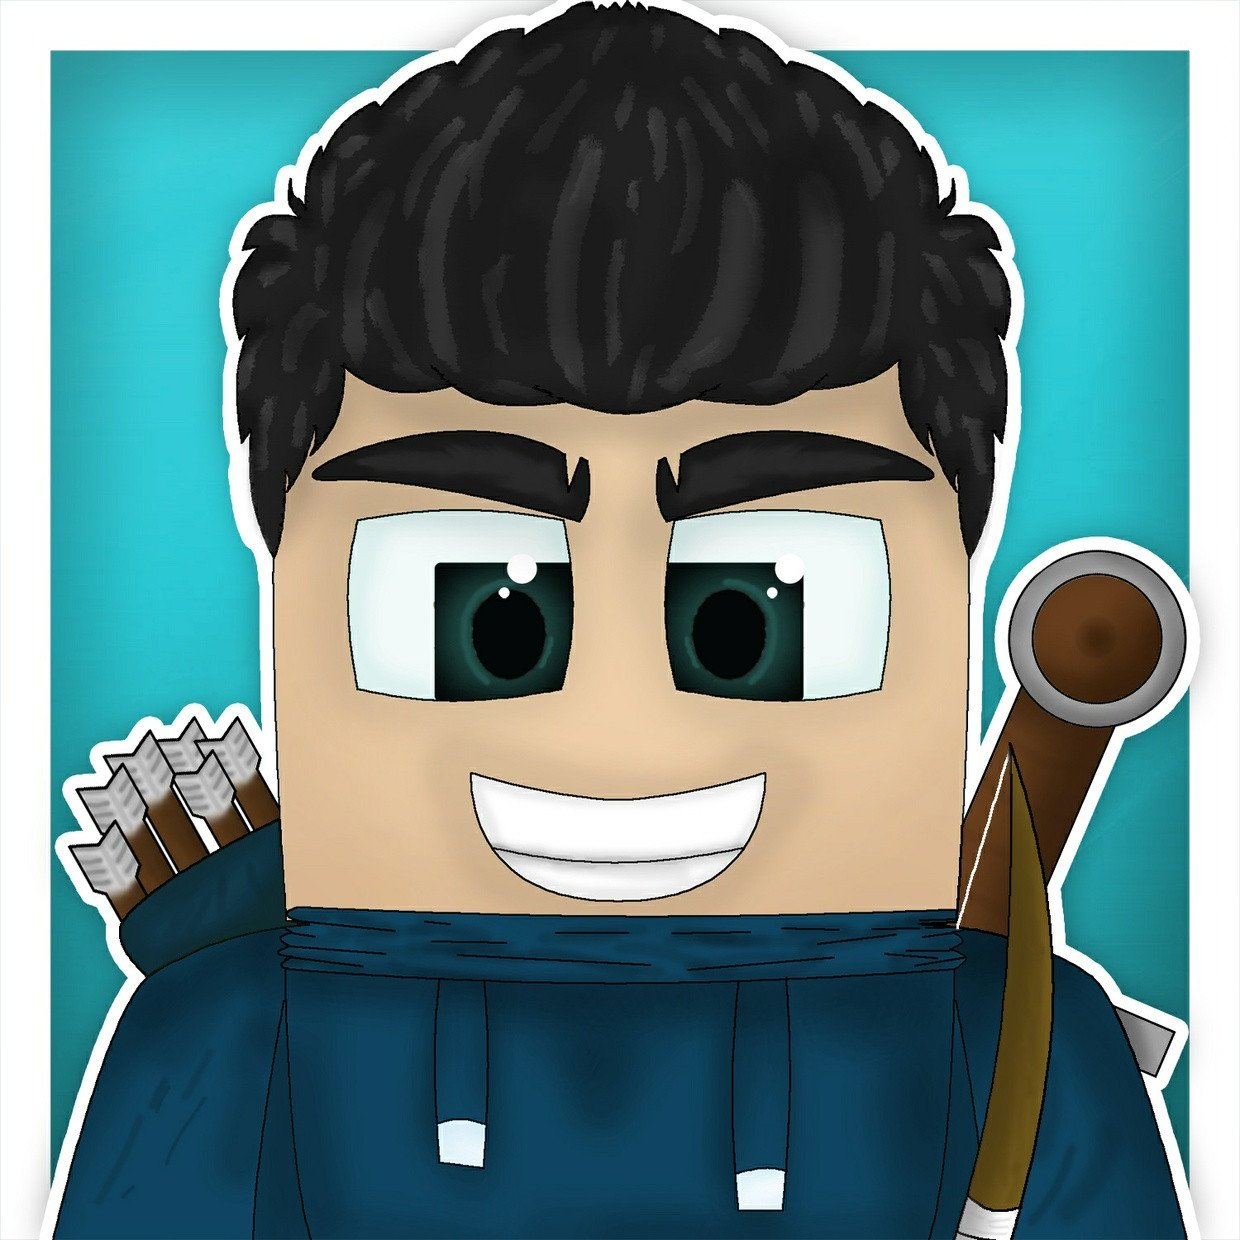 Minecraft Avatar Template Minecraft Drawn Avatar Template Photoshop